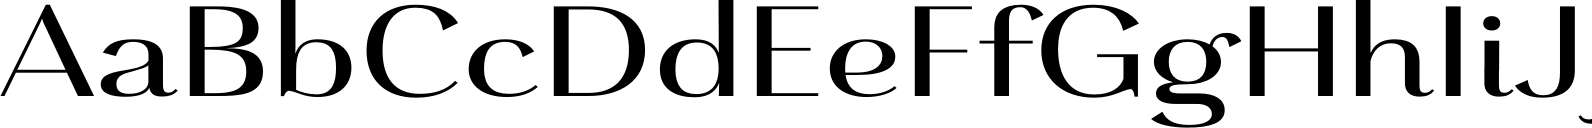 Grenale Ext Medium Font